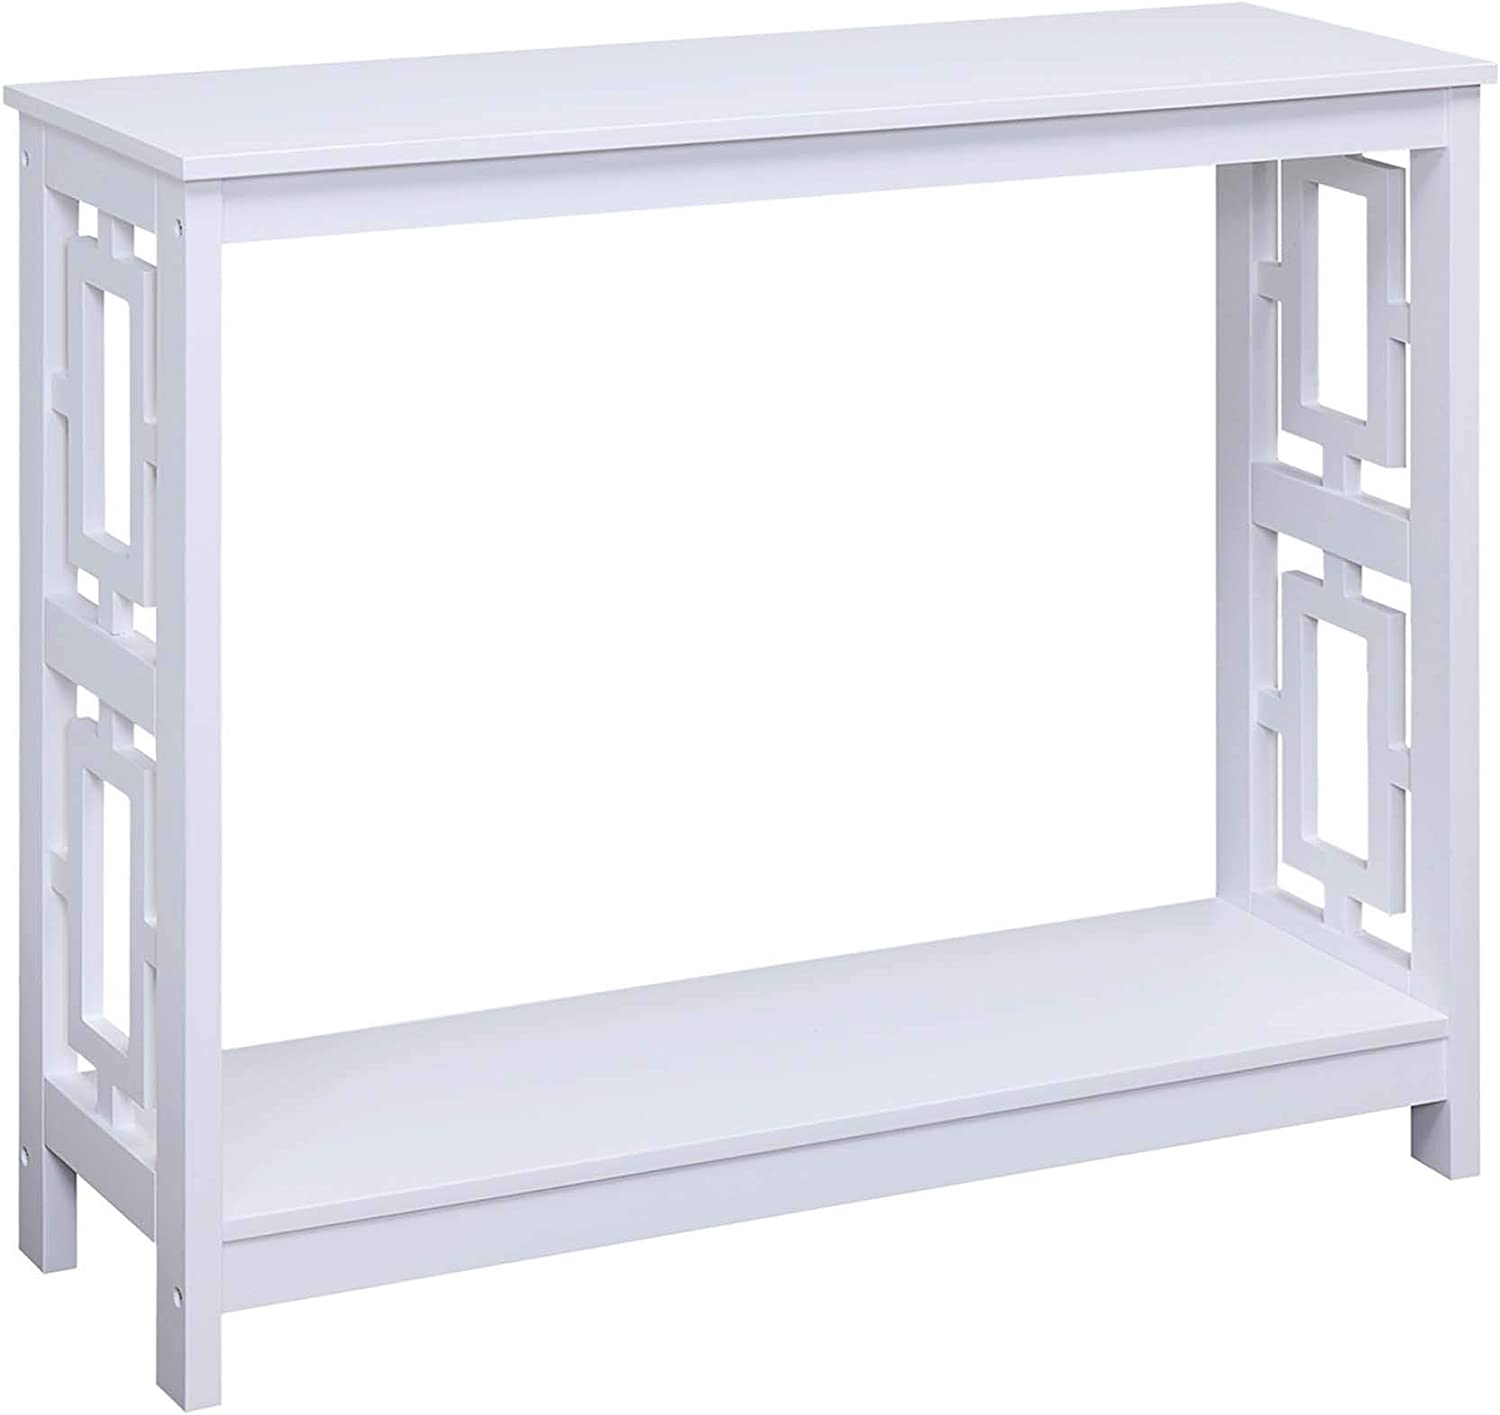 Convenience Concepts Town Square Console Table, White